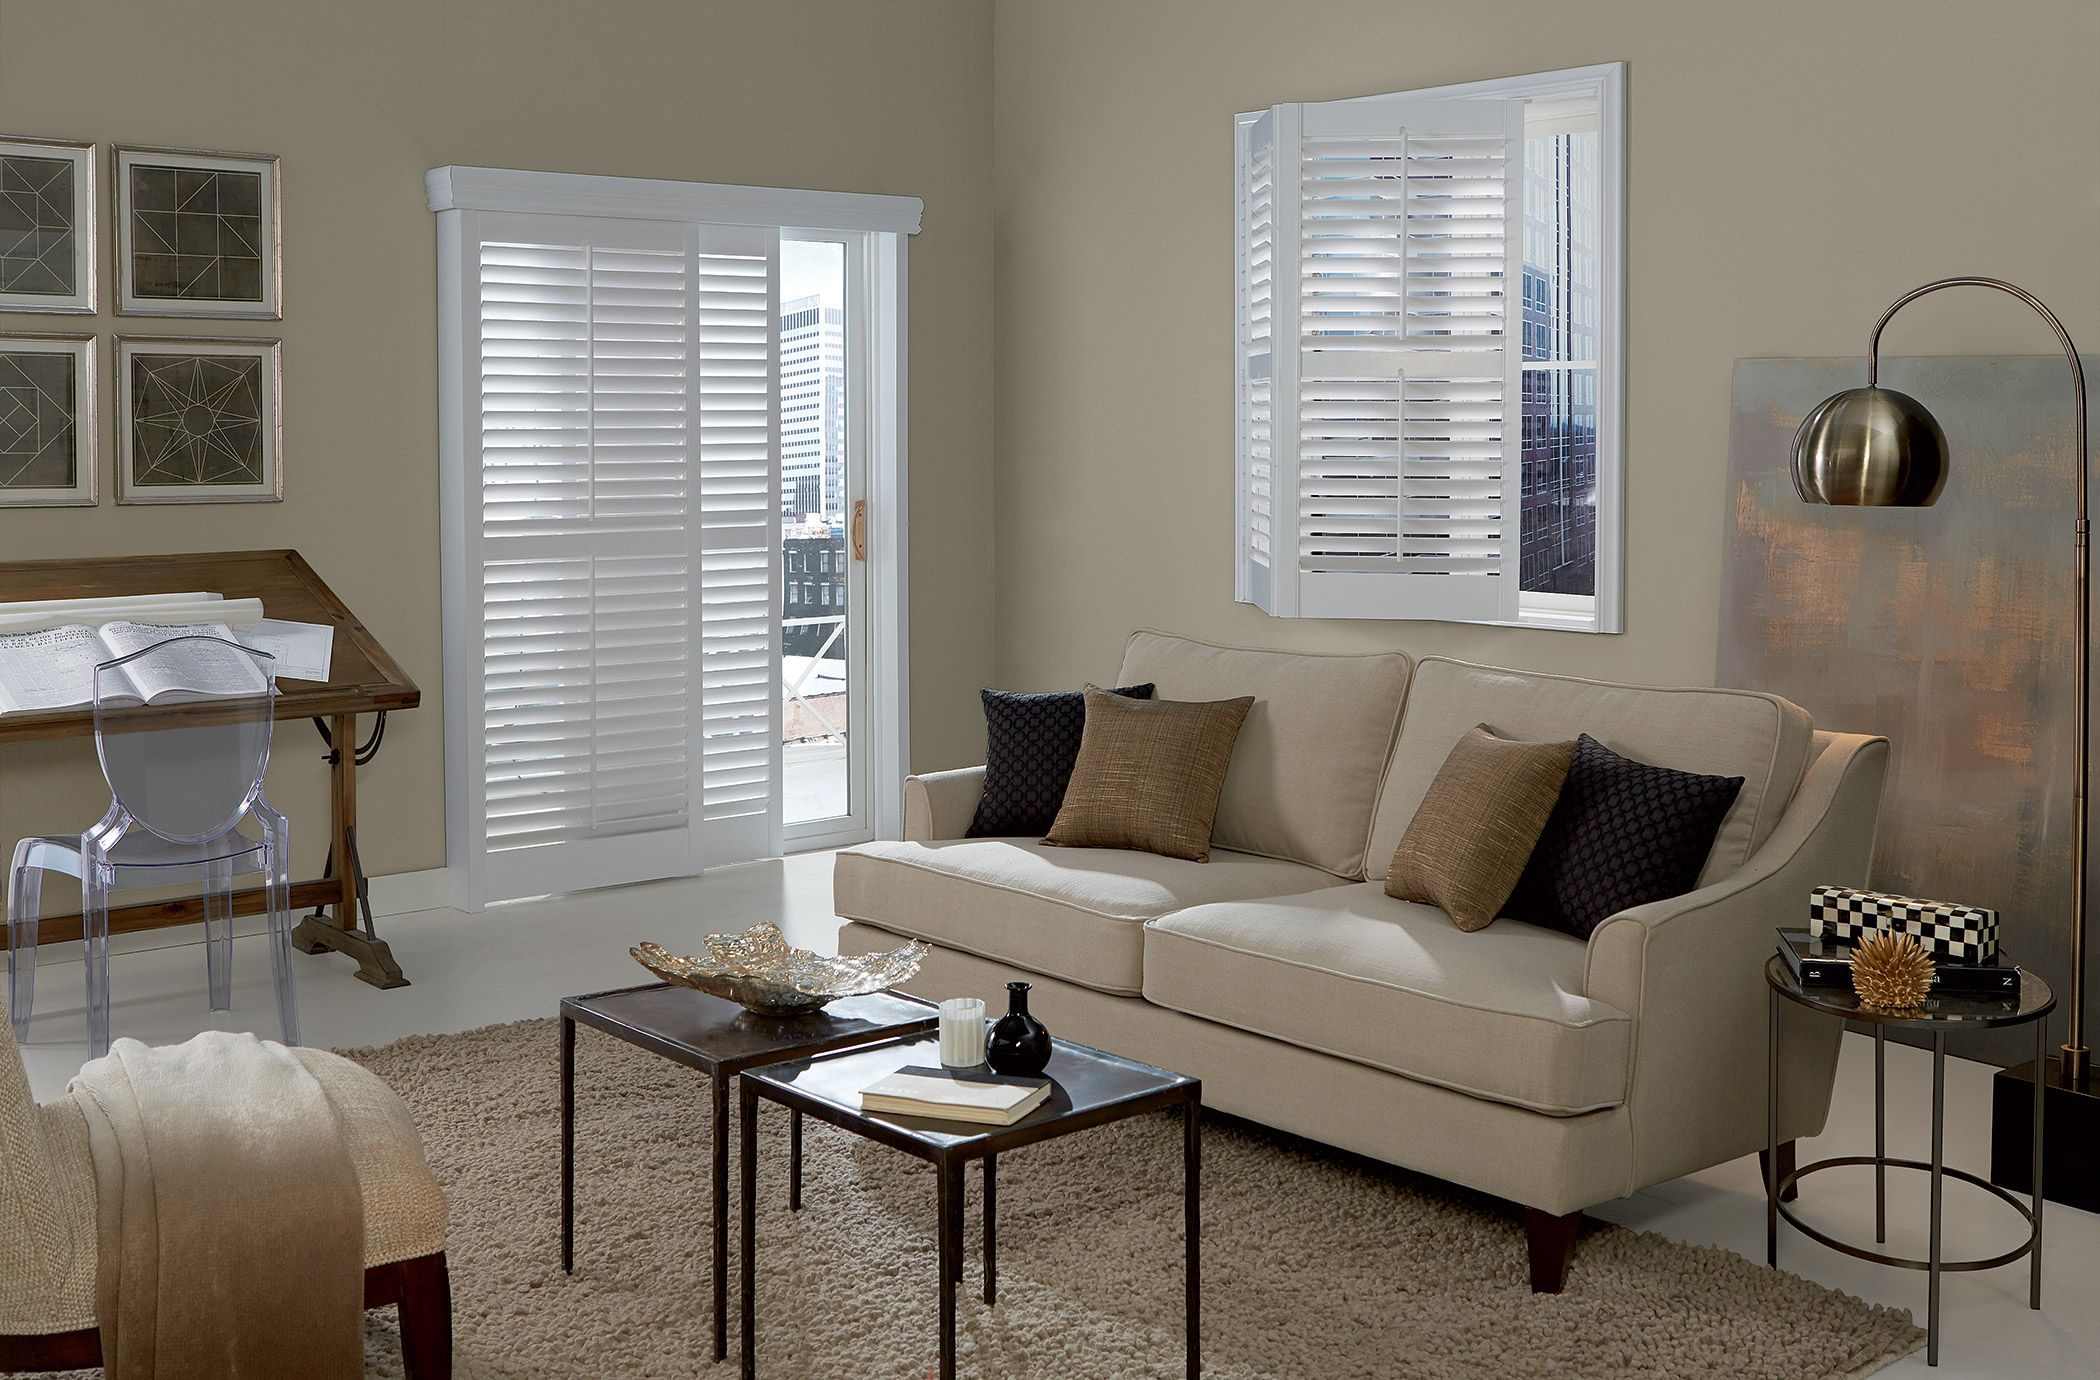 Wood bypass and bi-fold shutters with a decorative #valance in white.